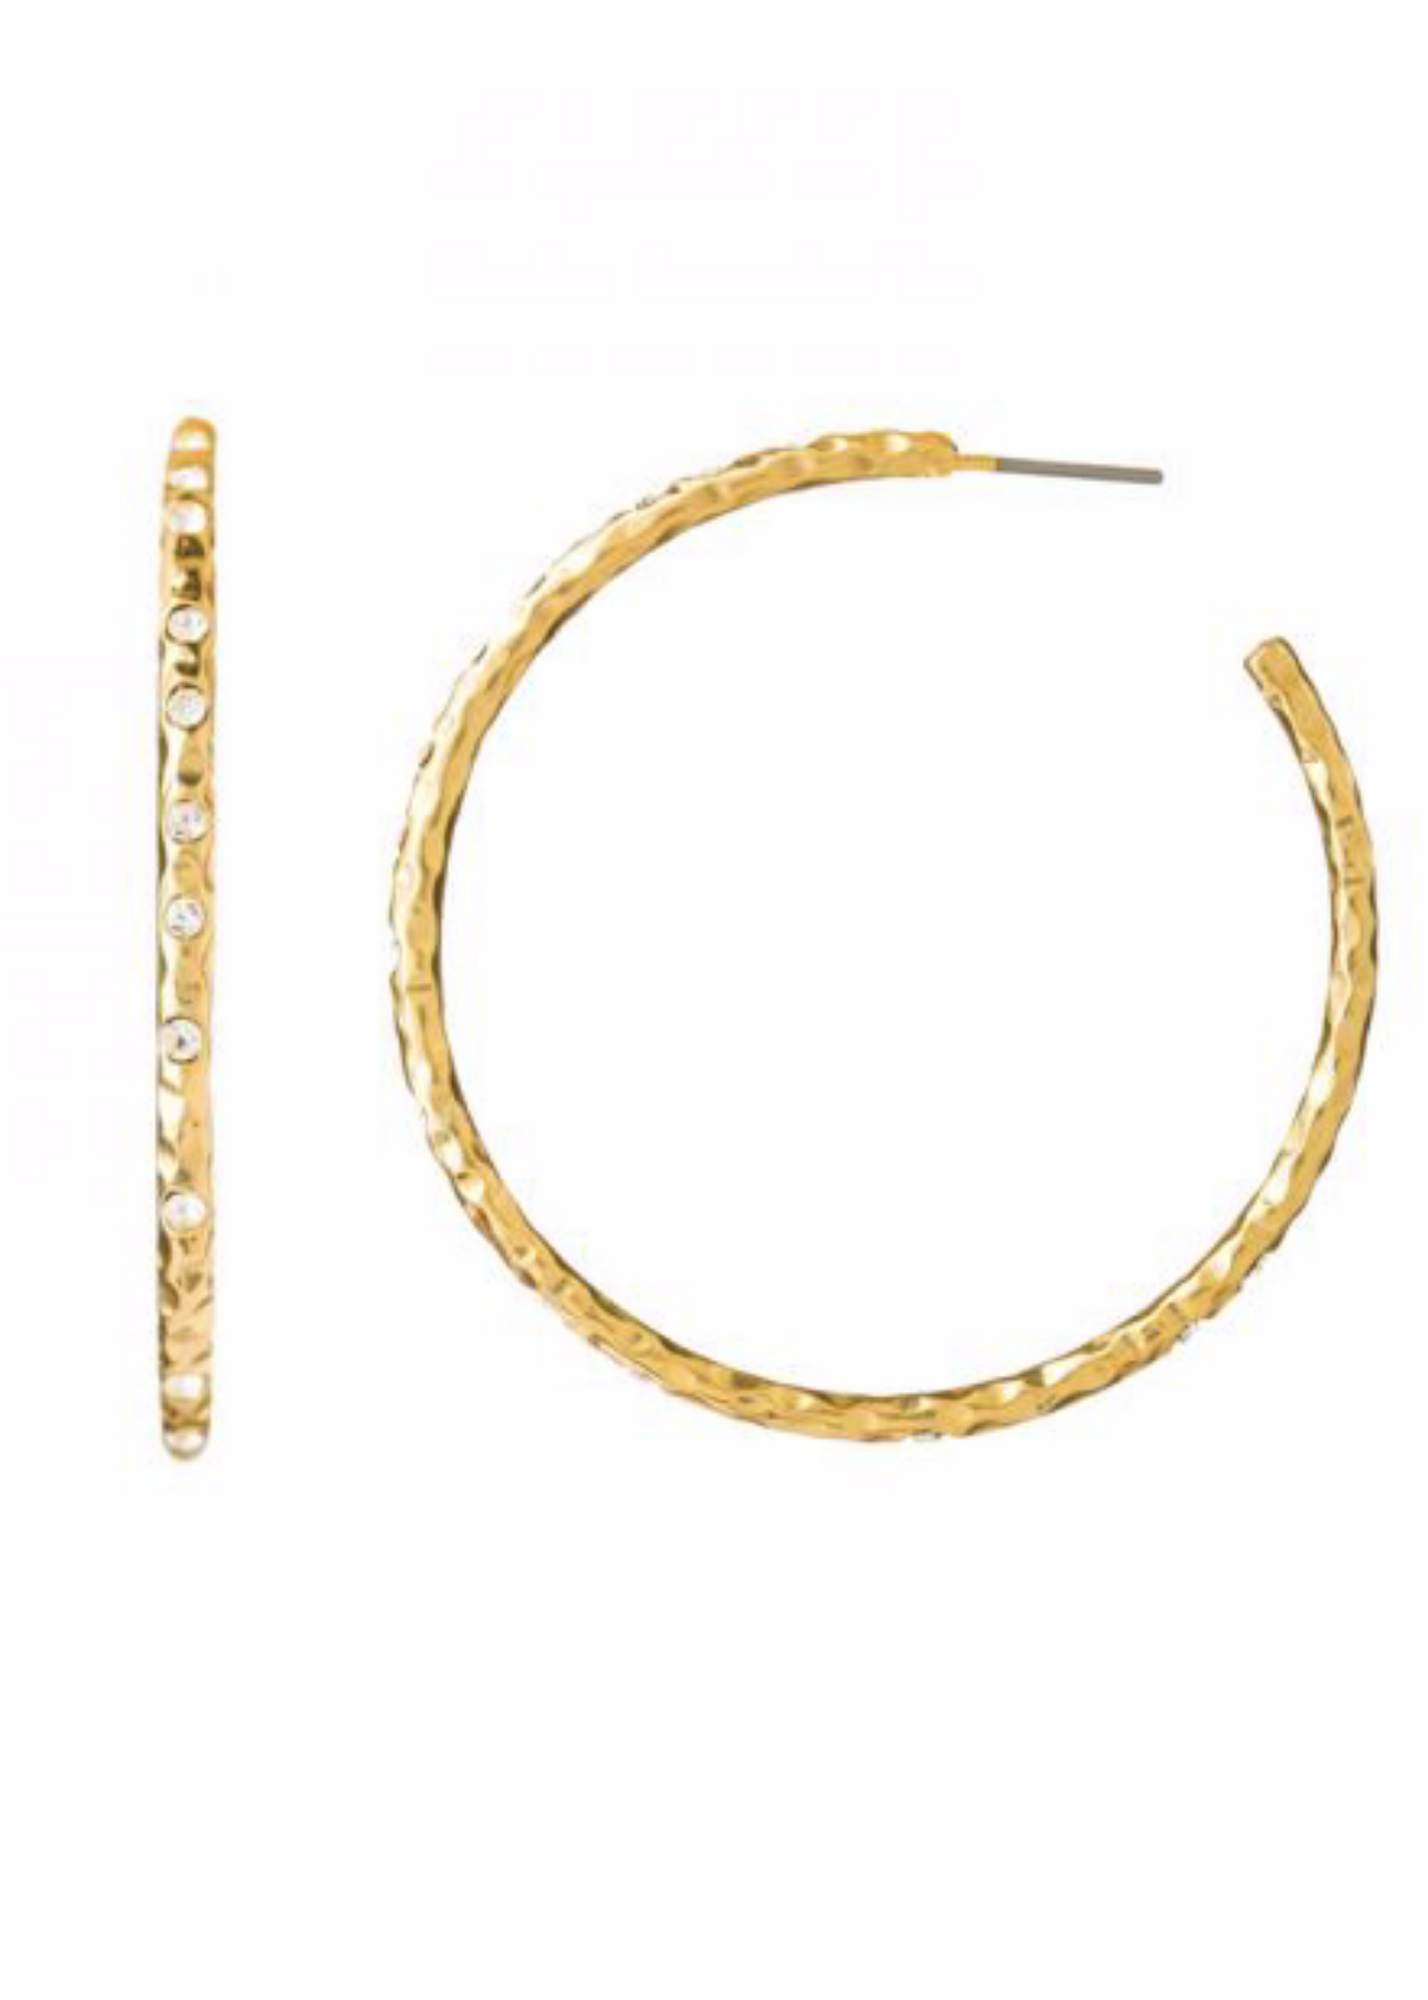 Fizz Hoop Earrings - Gold/Crystal